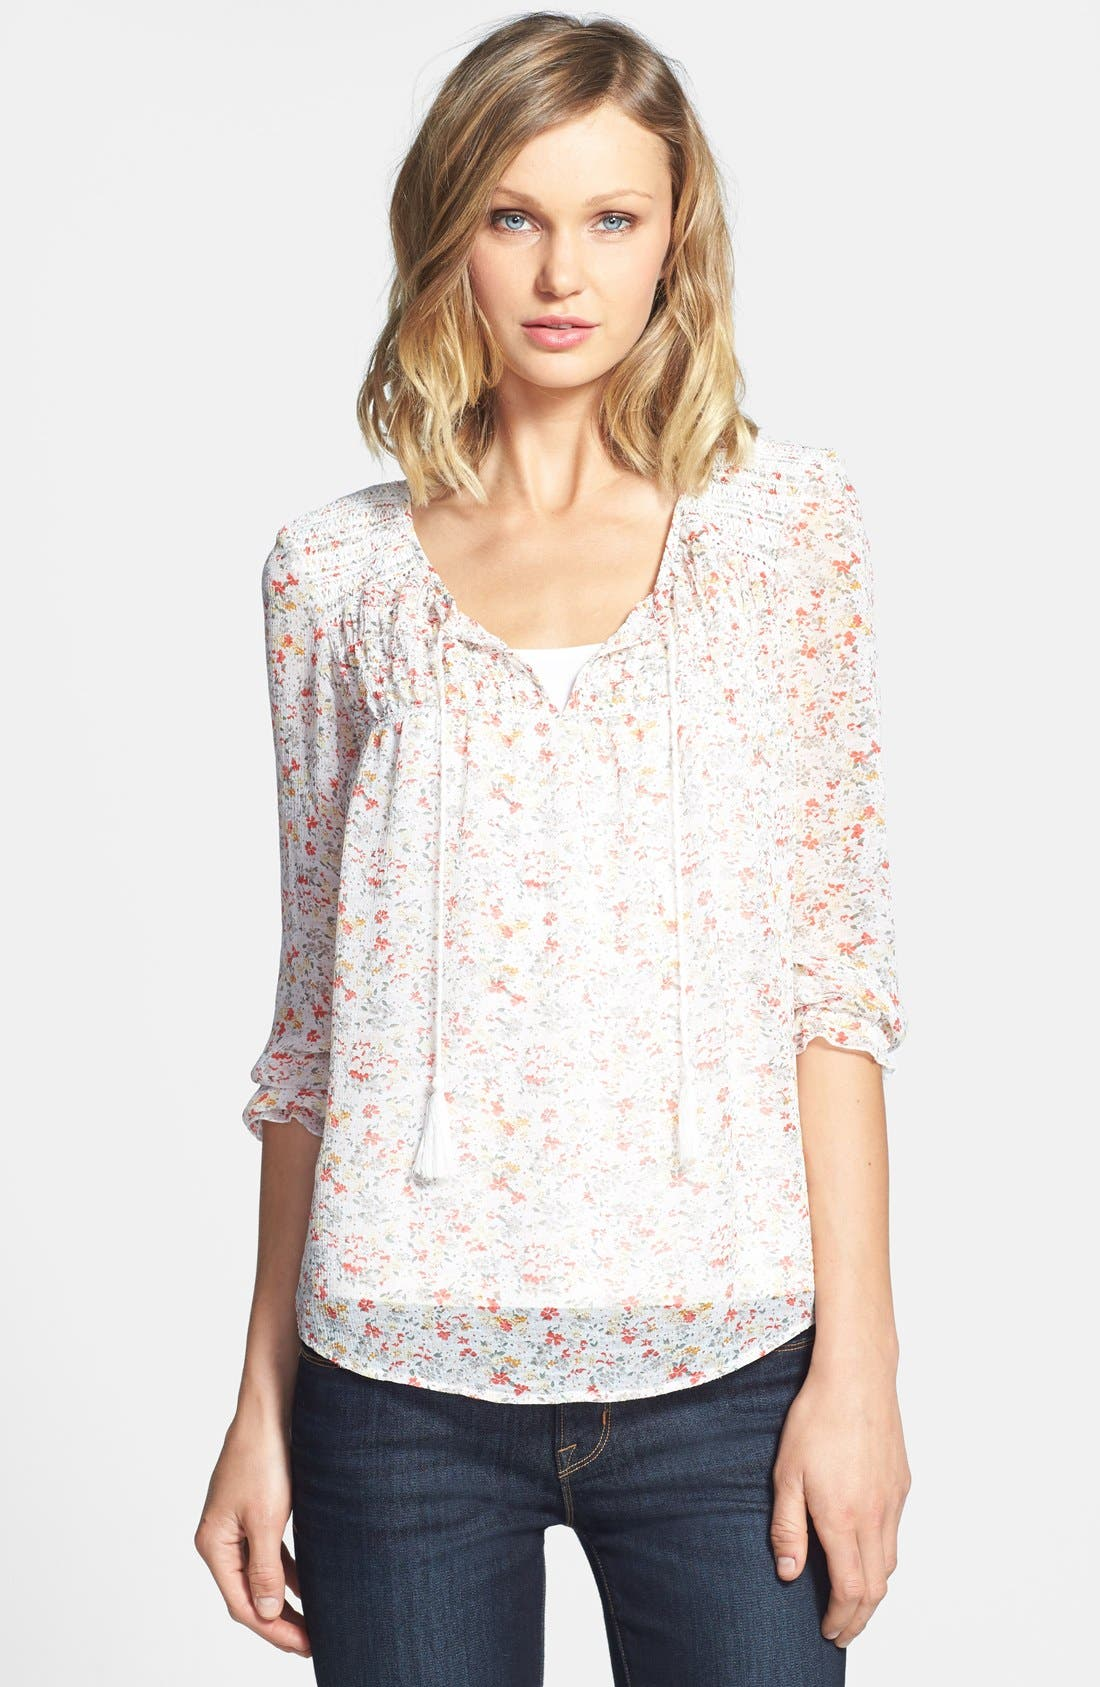 Alternate Image 1 Selected - Two by Vince Camuto 'Ditsy Floral' Tie Neck Blouse